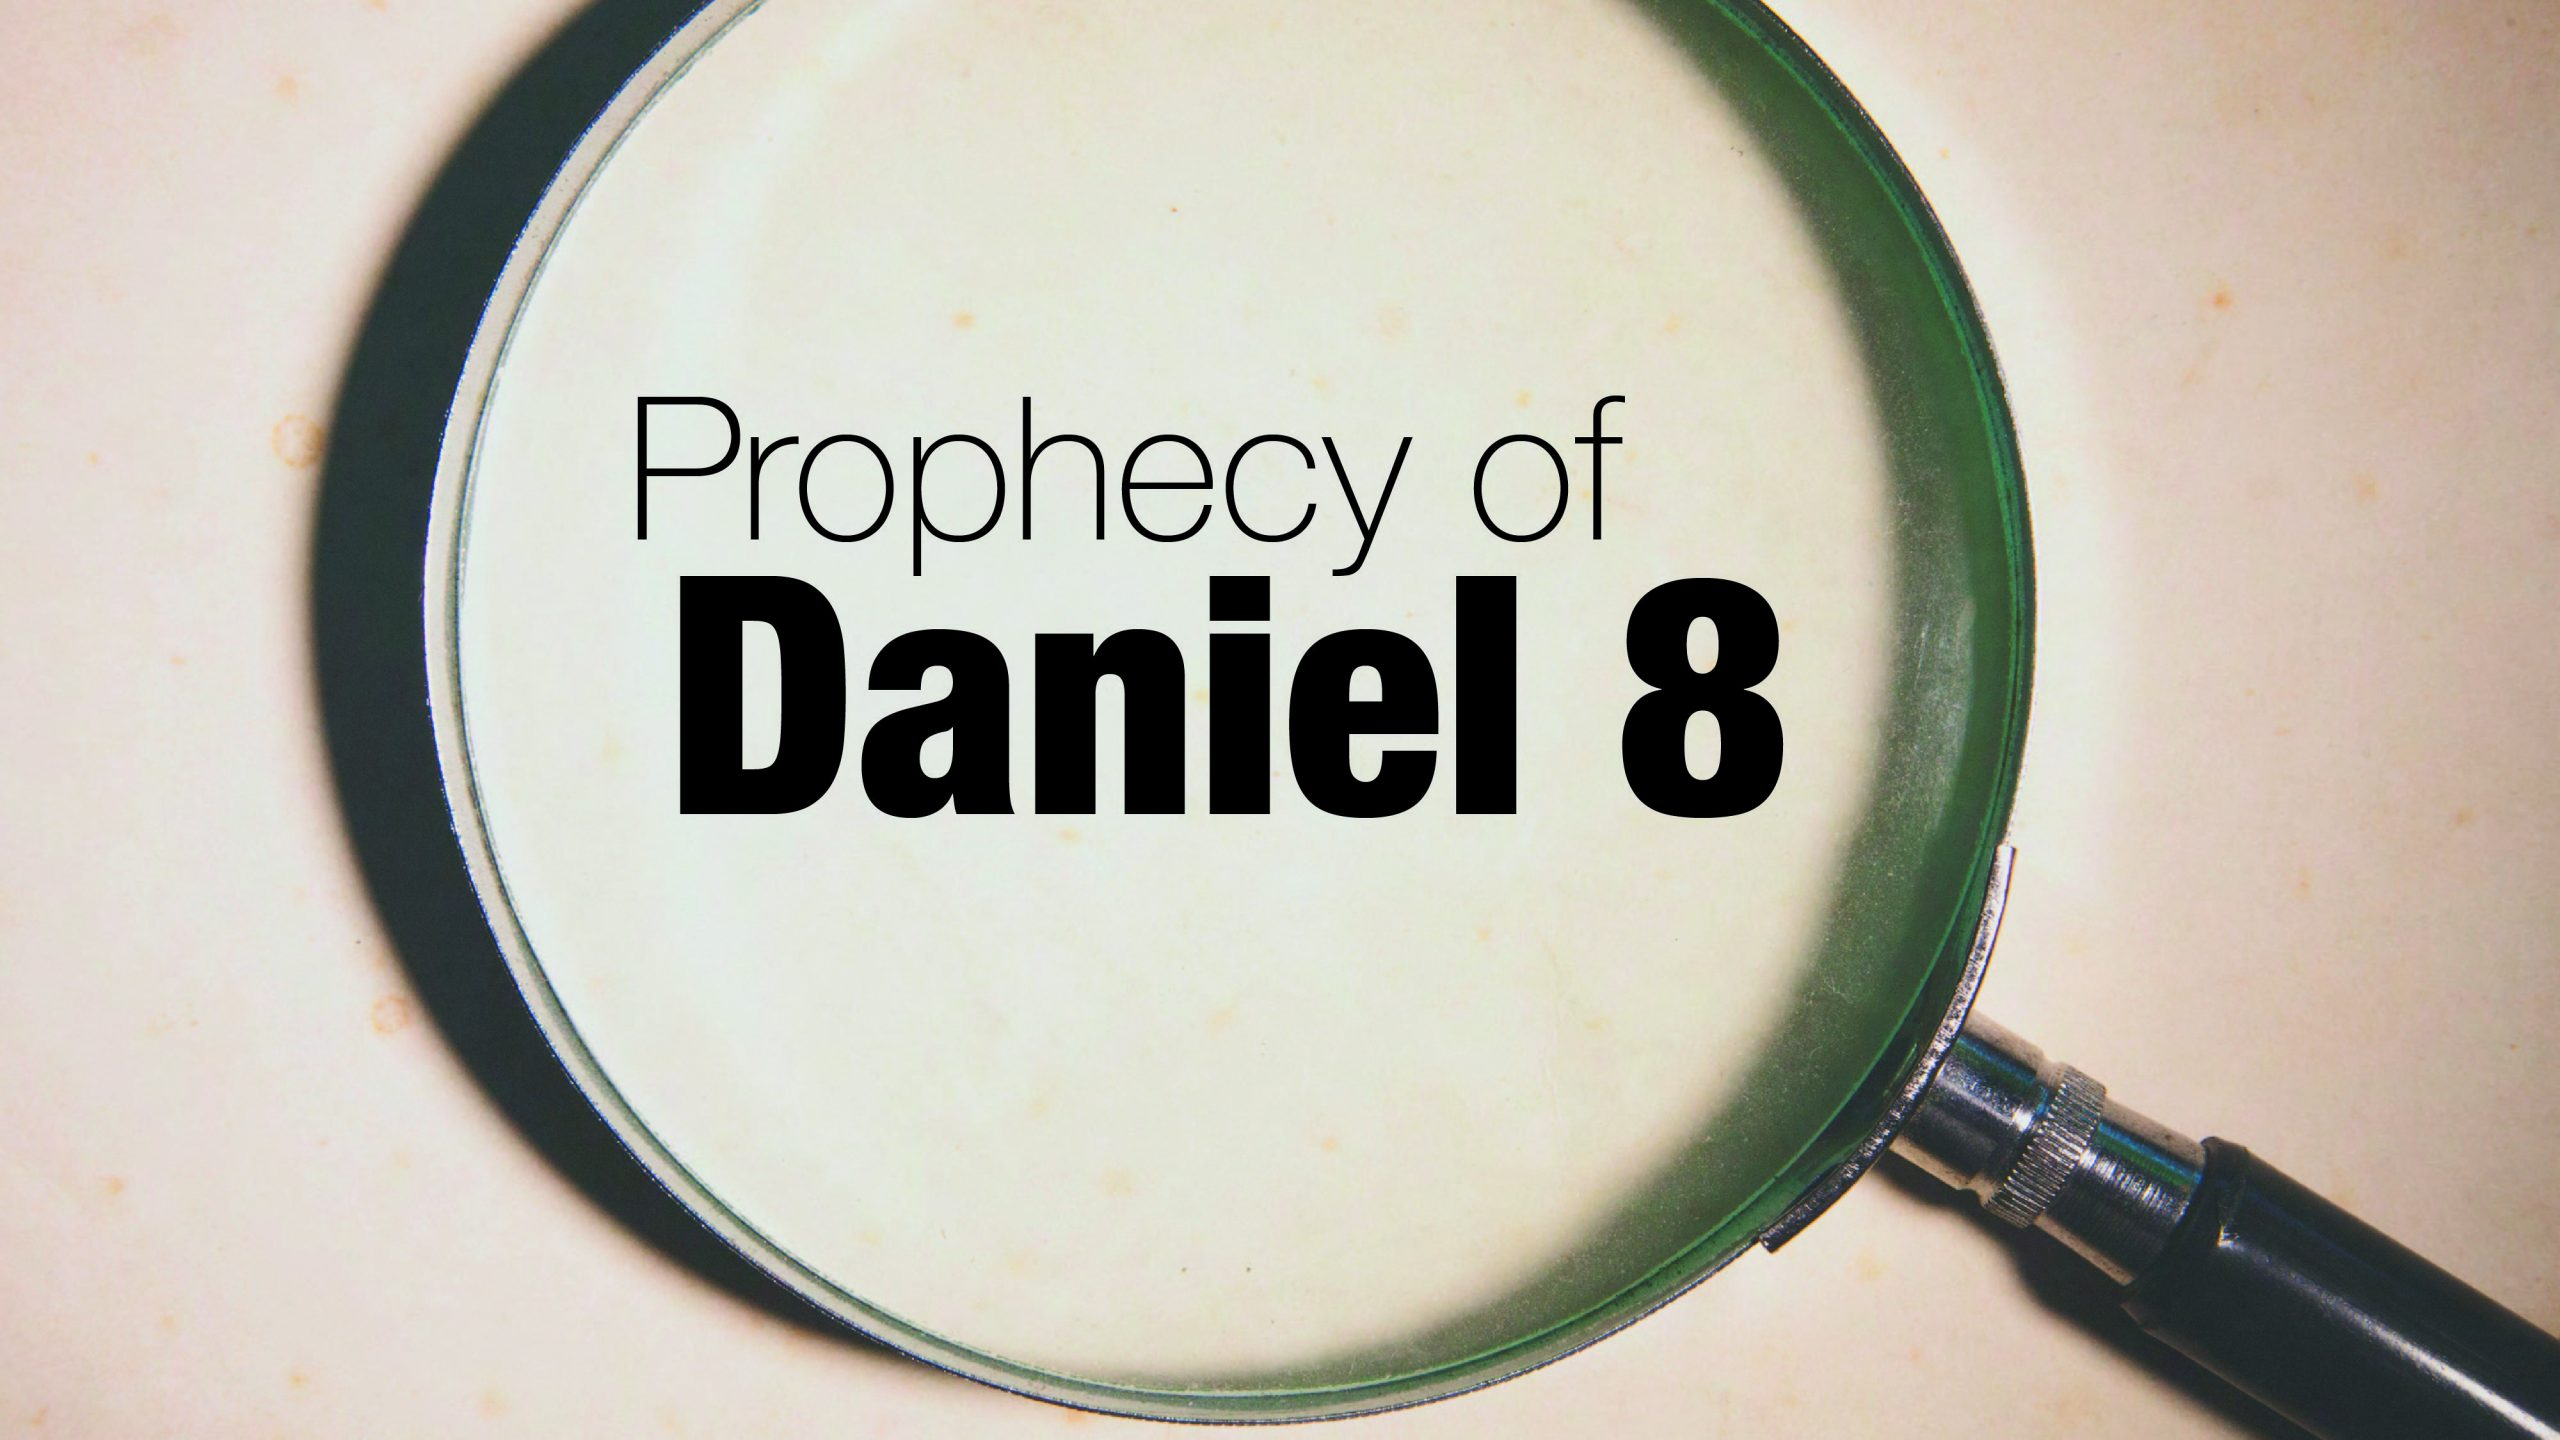 The Prophecy of Daniel 8